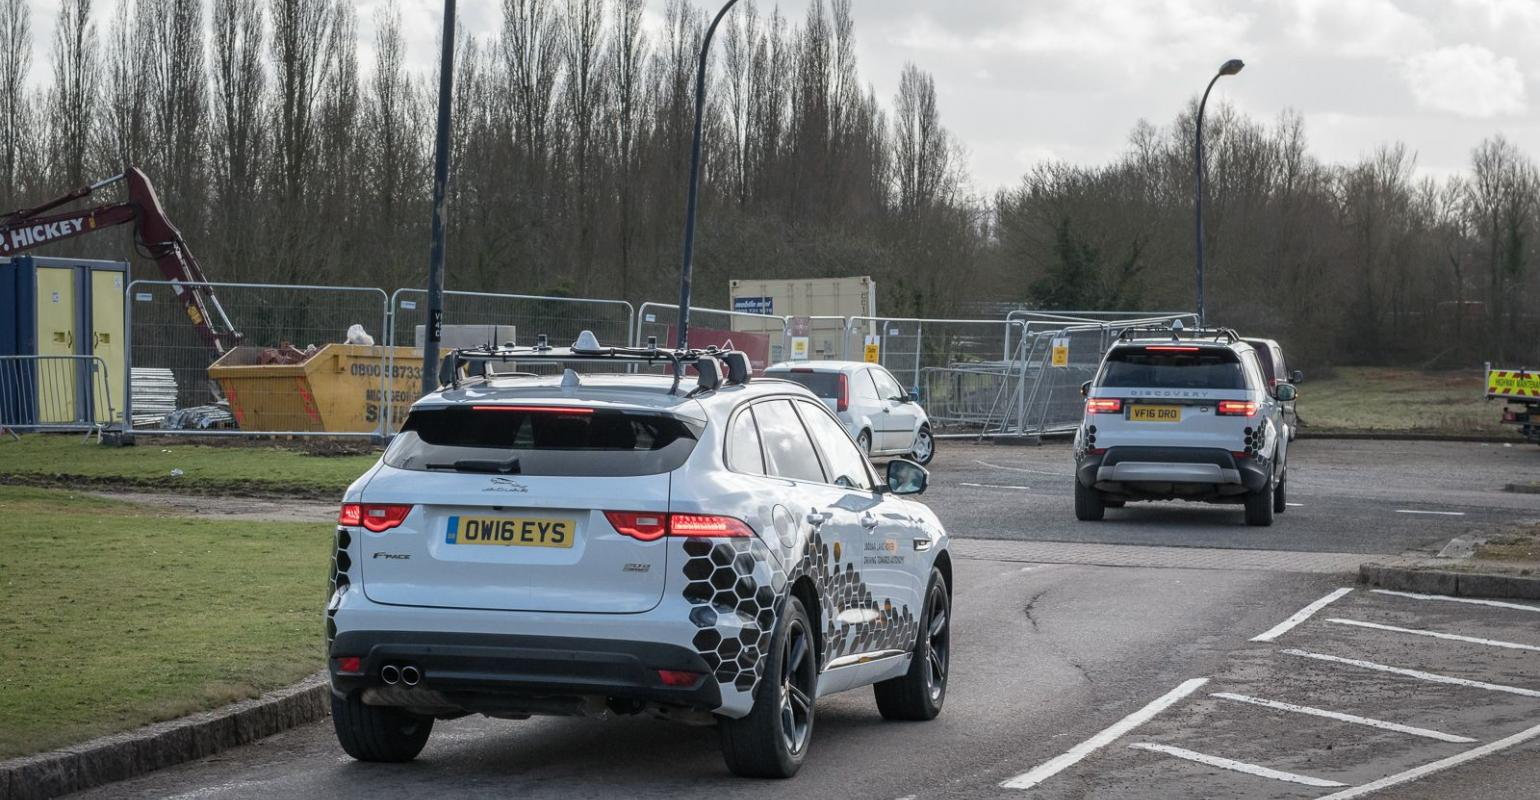 jlr tests connected cars on u.k. roads | wardsauto